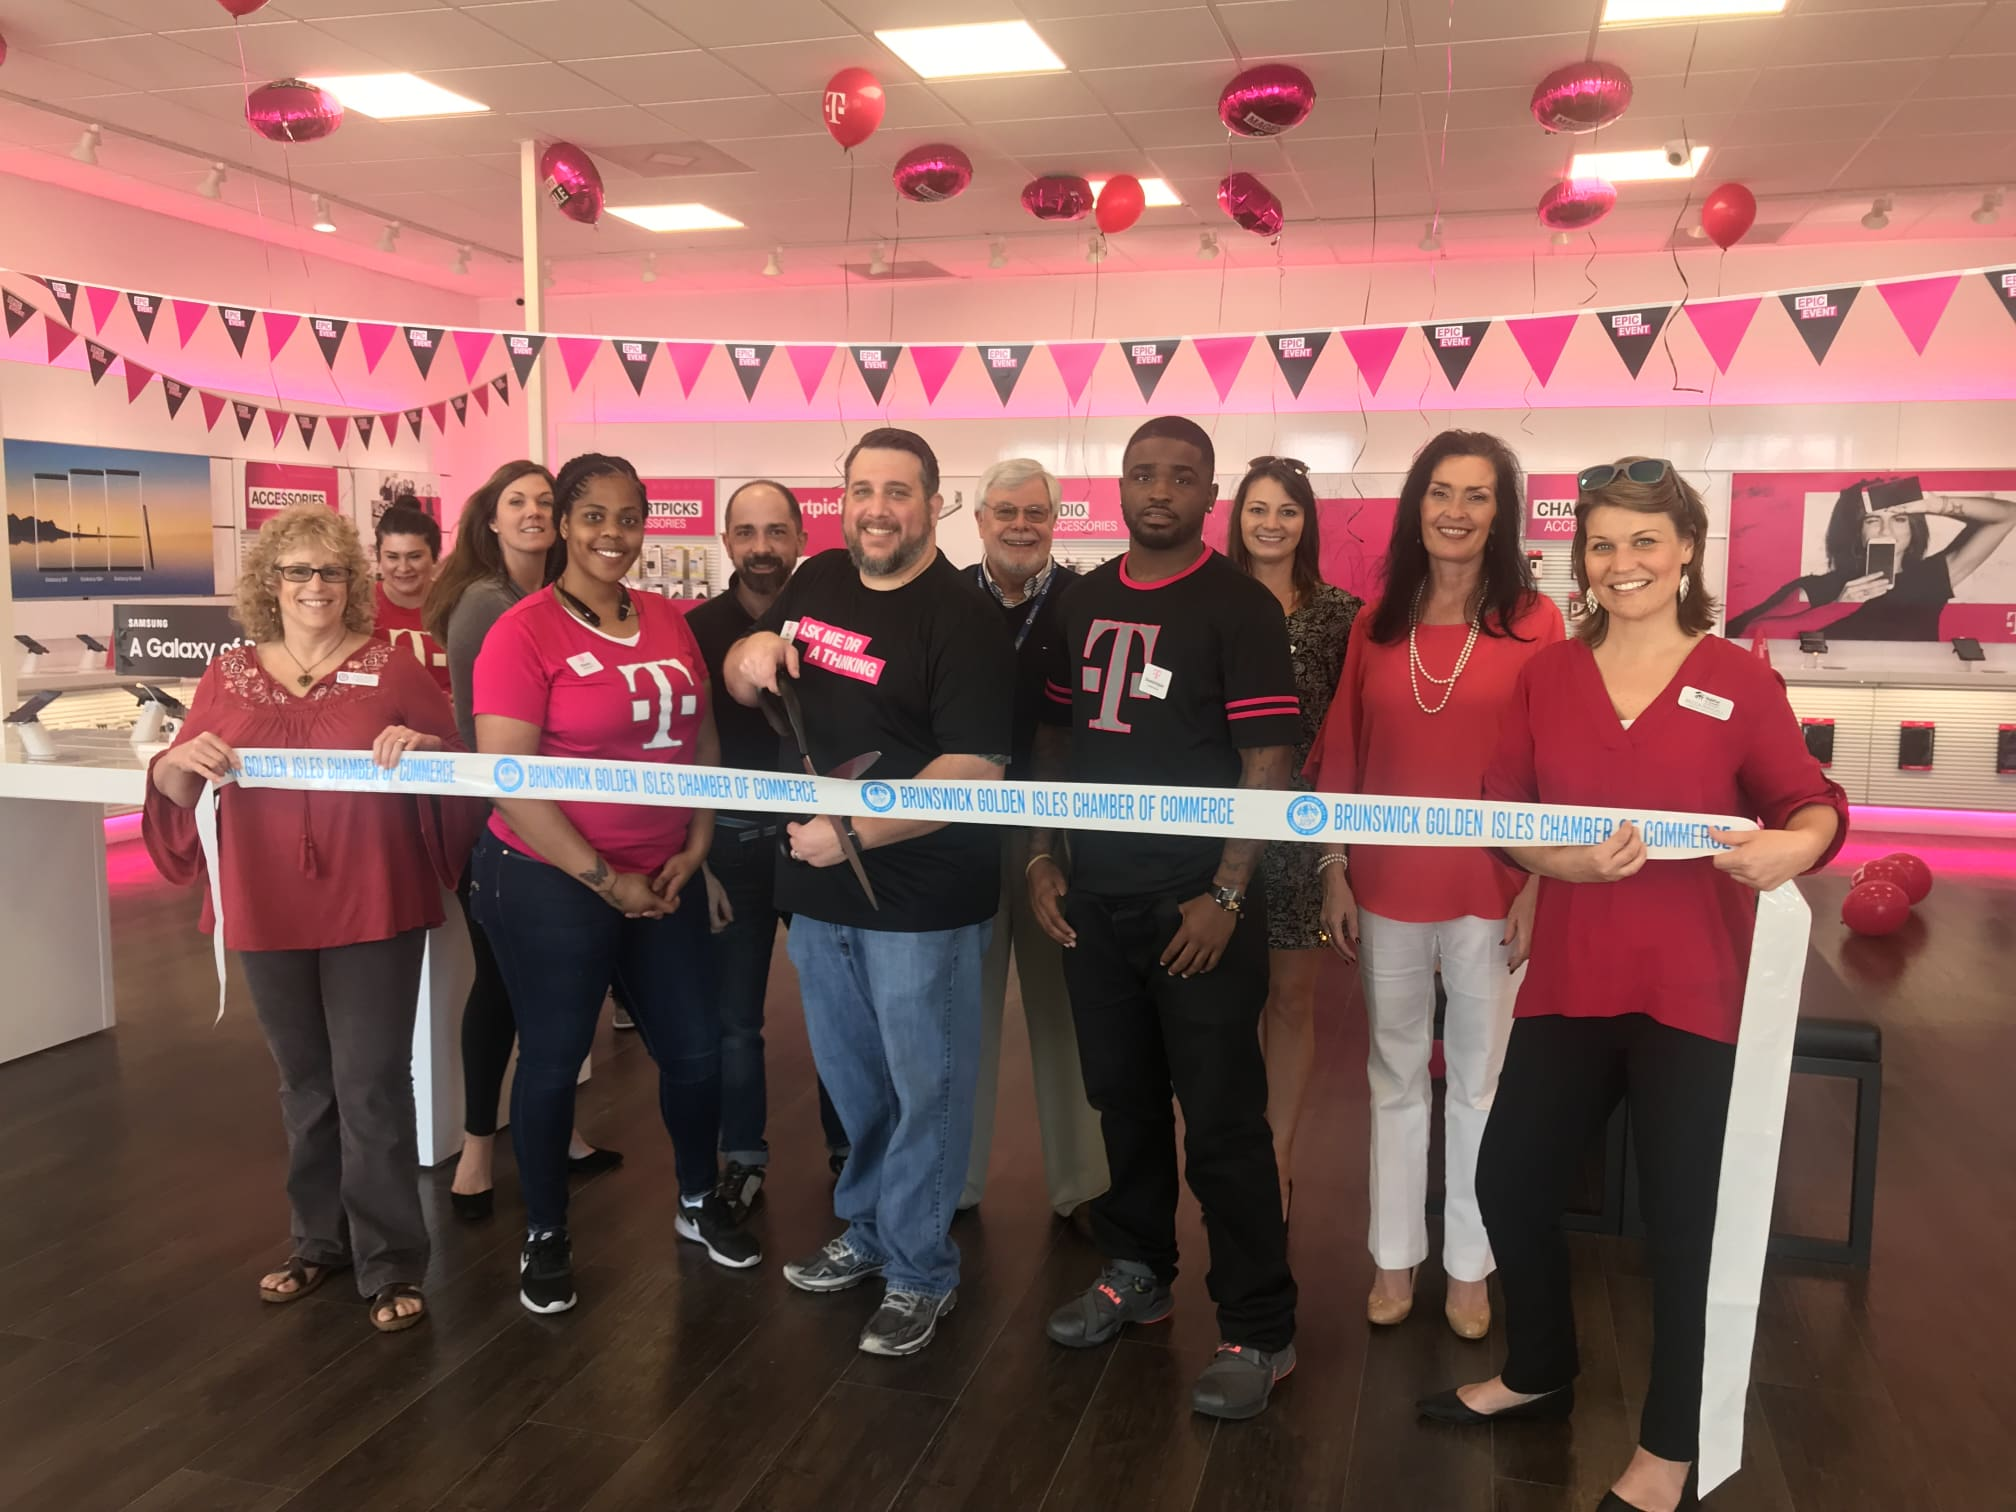 T-Mobile-ribbon-cutting-02-2018-w2016.jpg